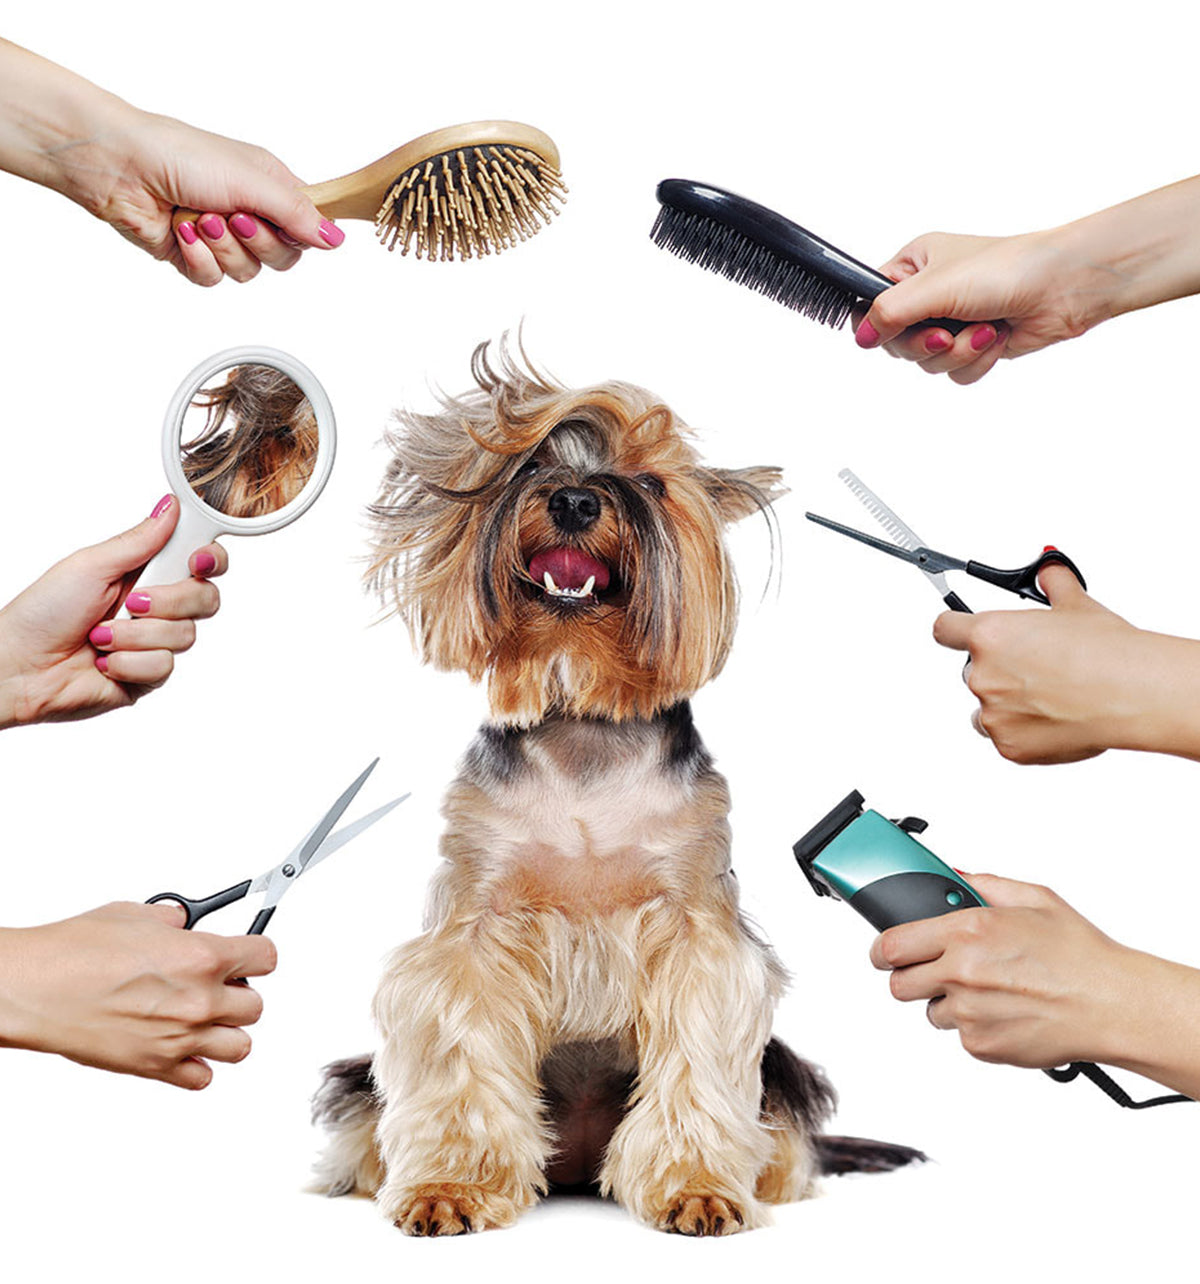 Pet Grooming Mistakes You Need To Avoid!